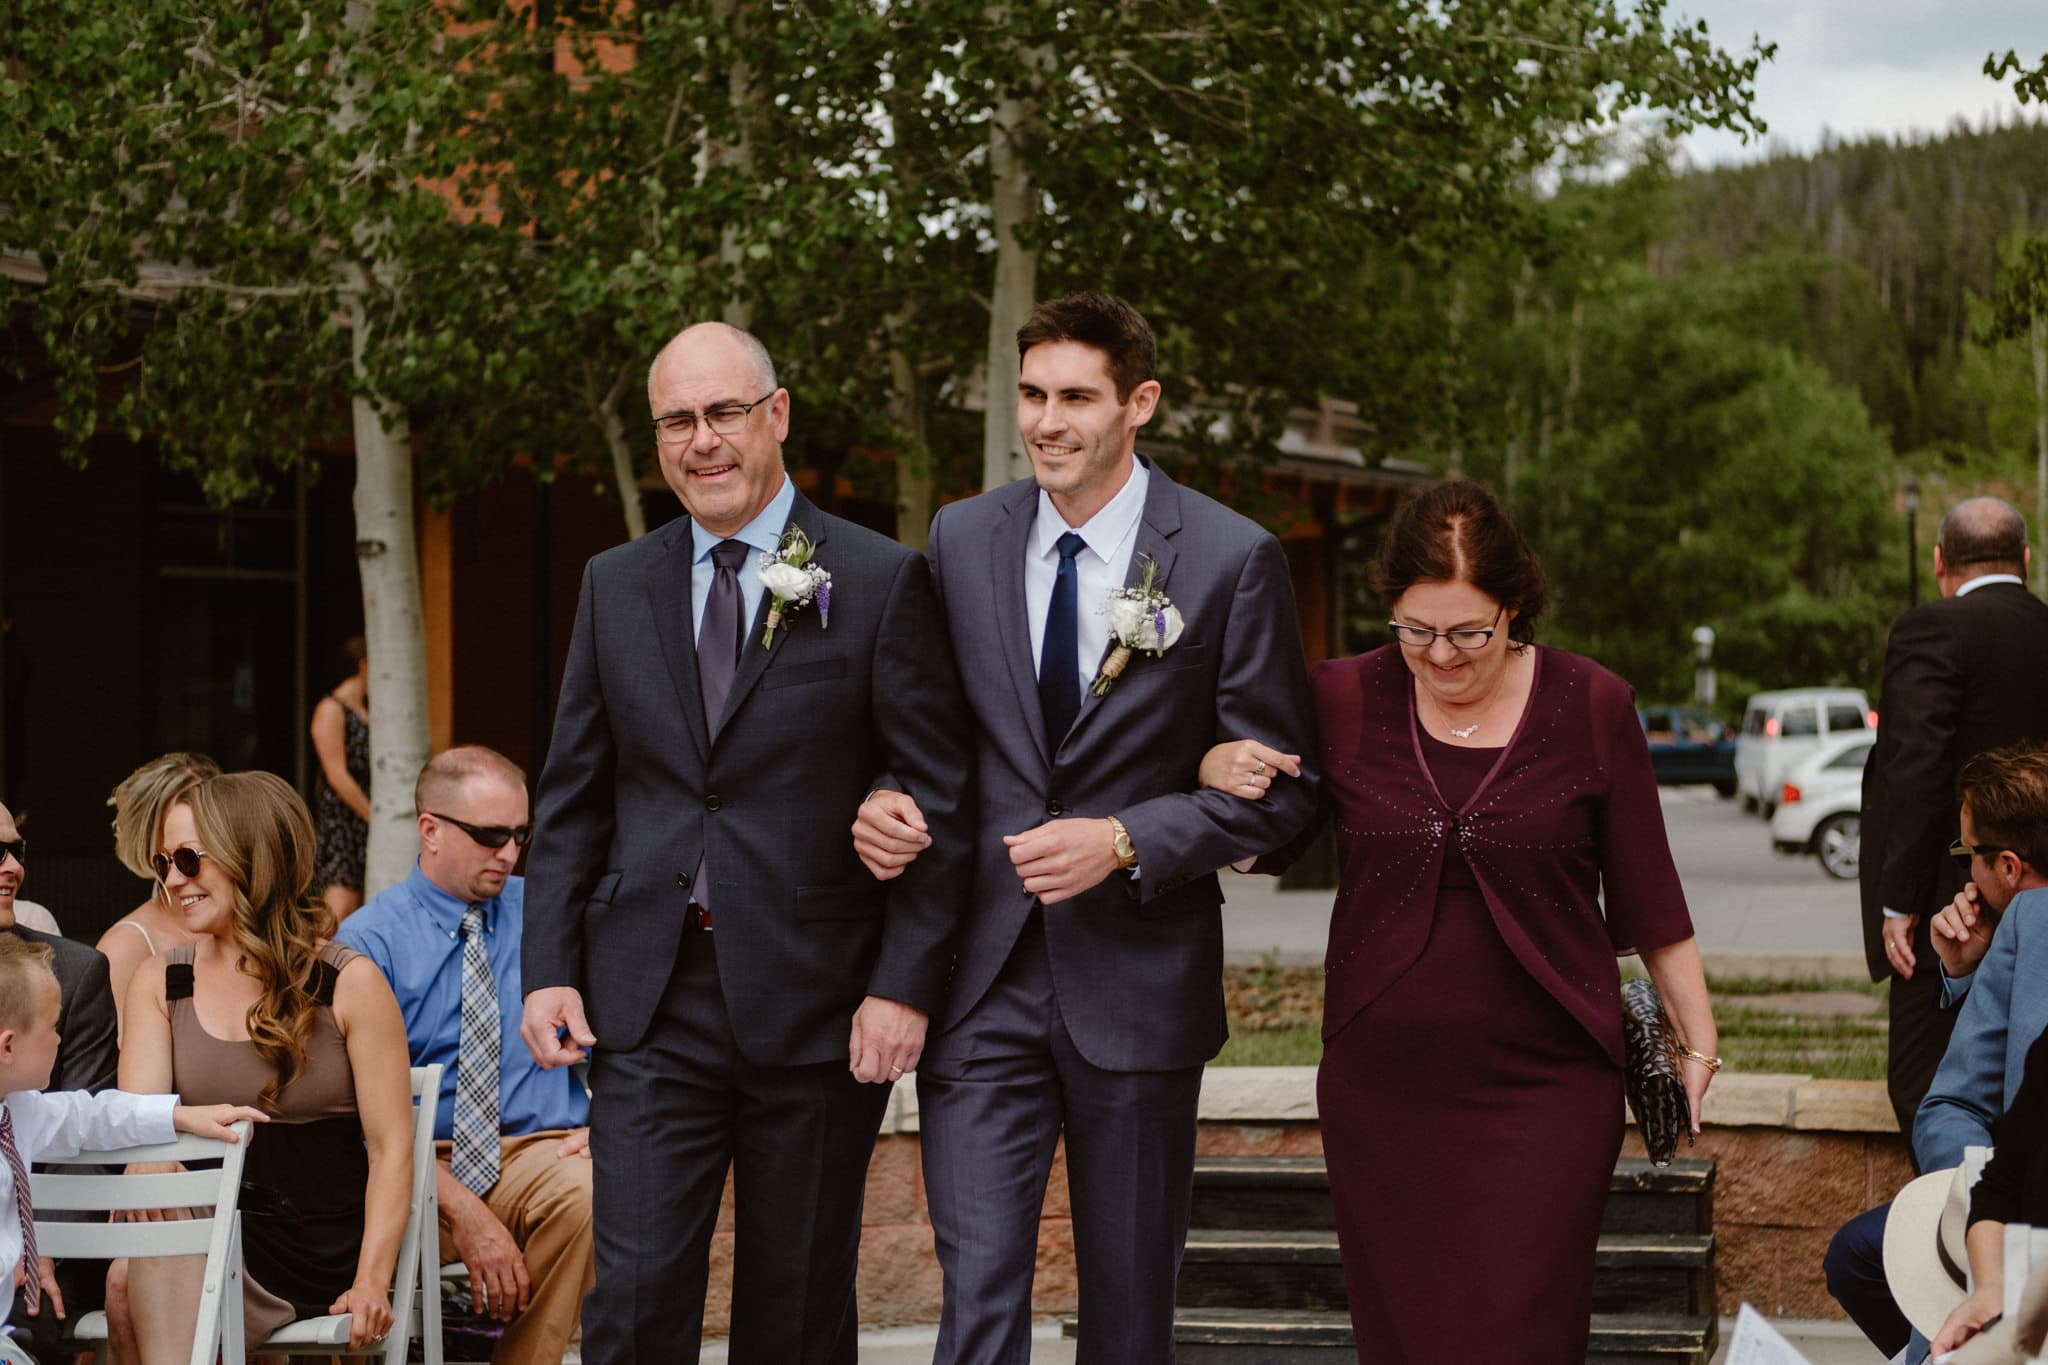 Groom and parents walking down the aisle at Main Street Station wedding, Breckenridge wedding photographer